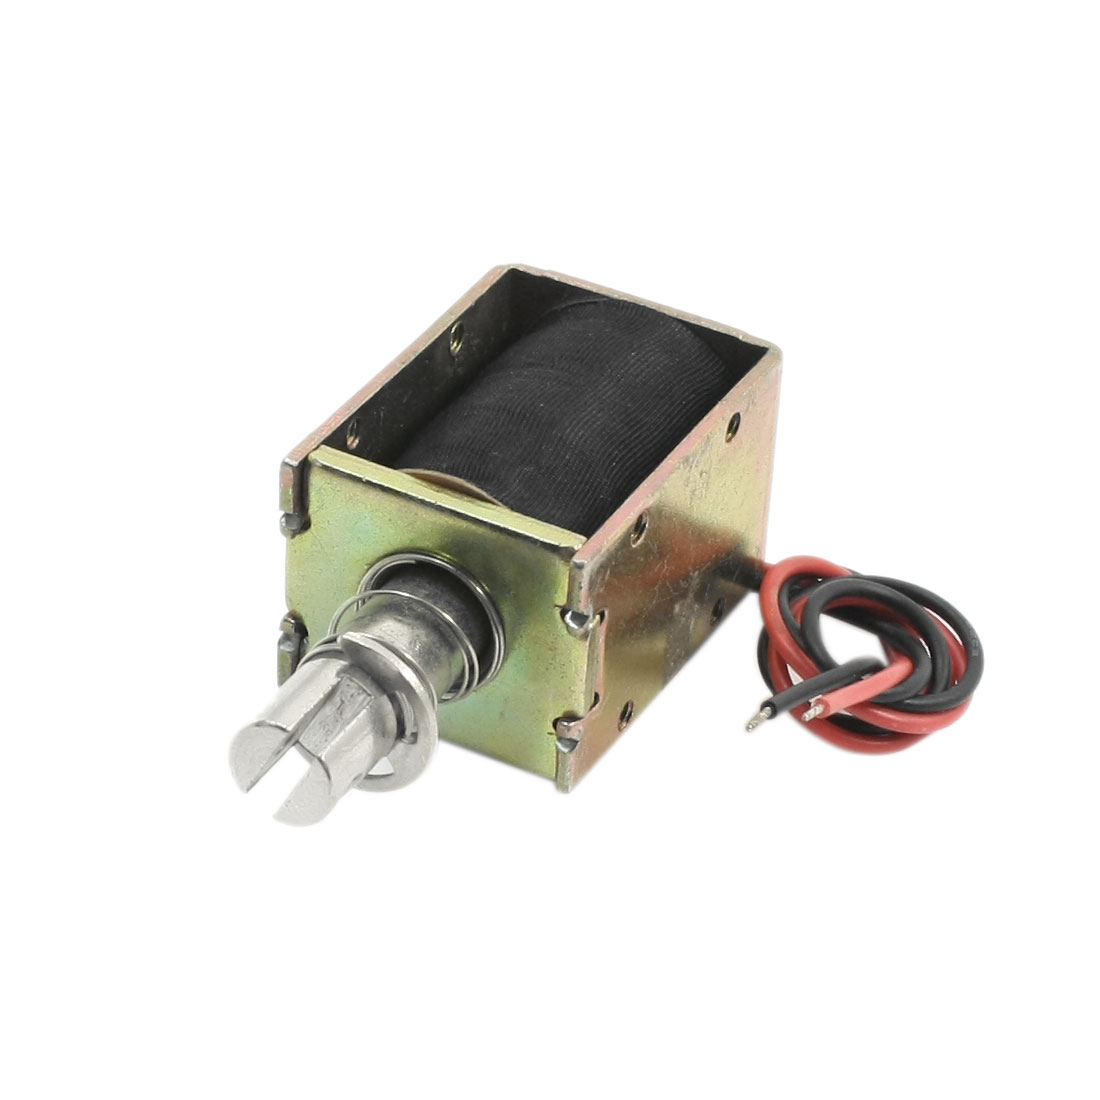 DC48V 700g Force 10mm Actuator 2-Wires Pull Push Solenoid Electromagnet